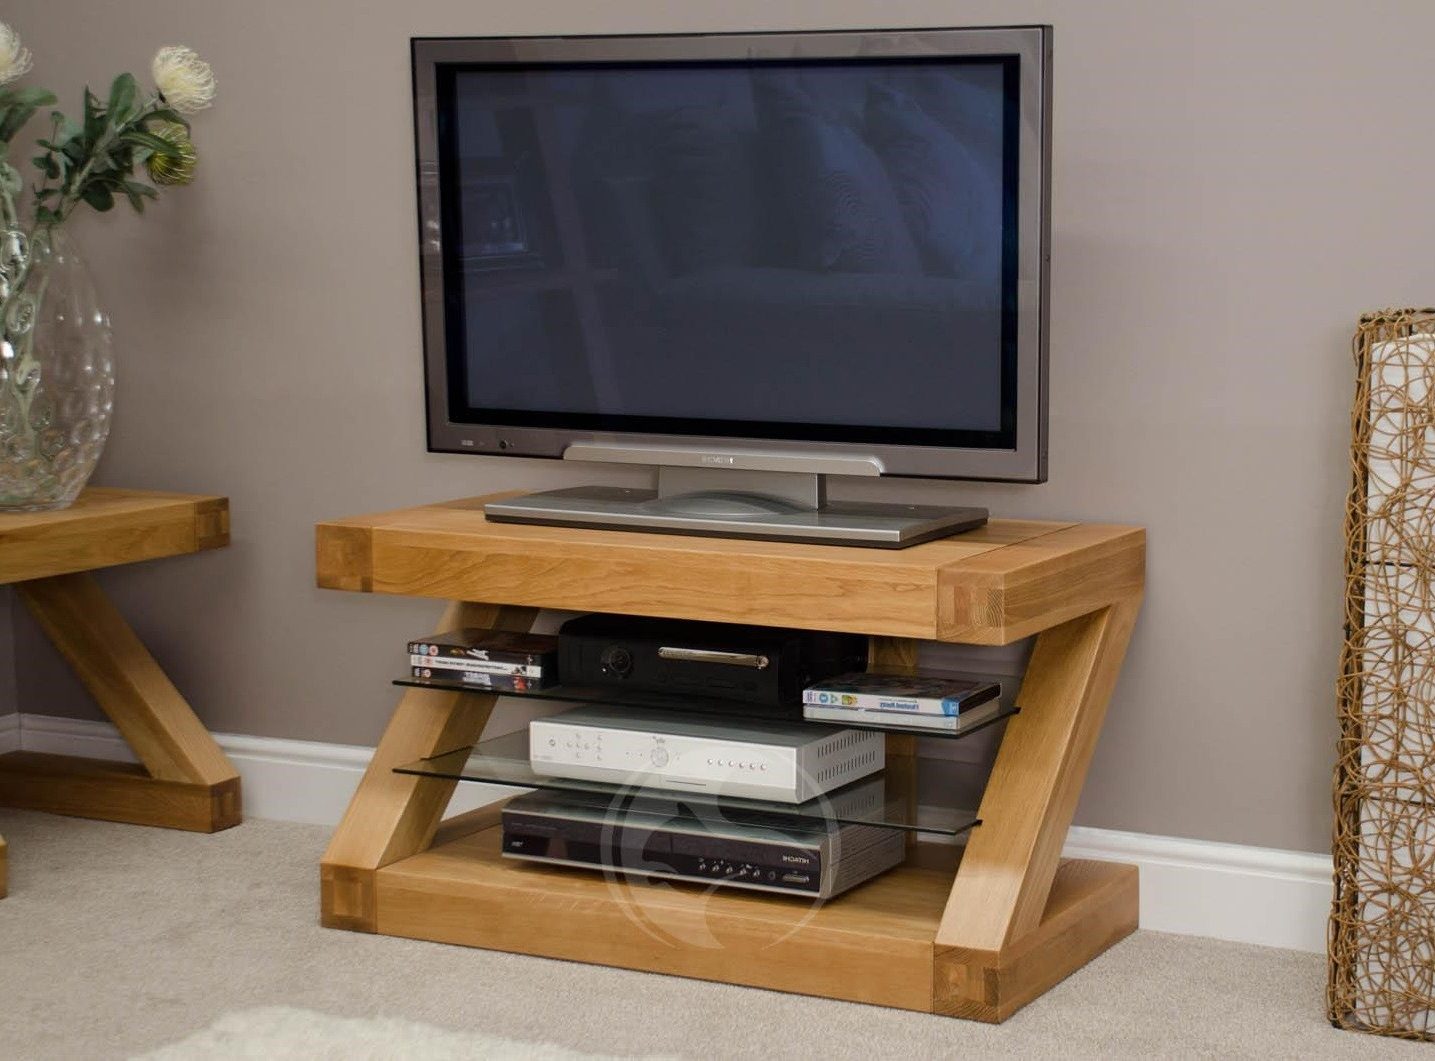 Oak Furniture Uk (View 12 of 20)